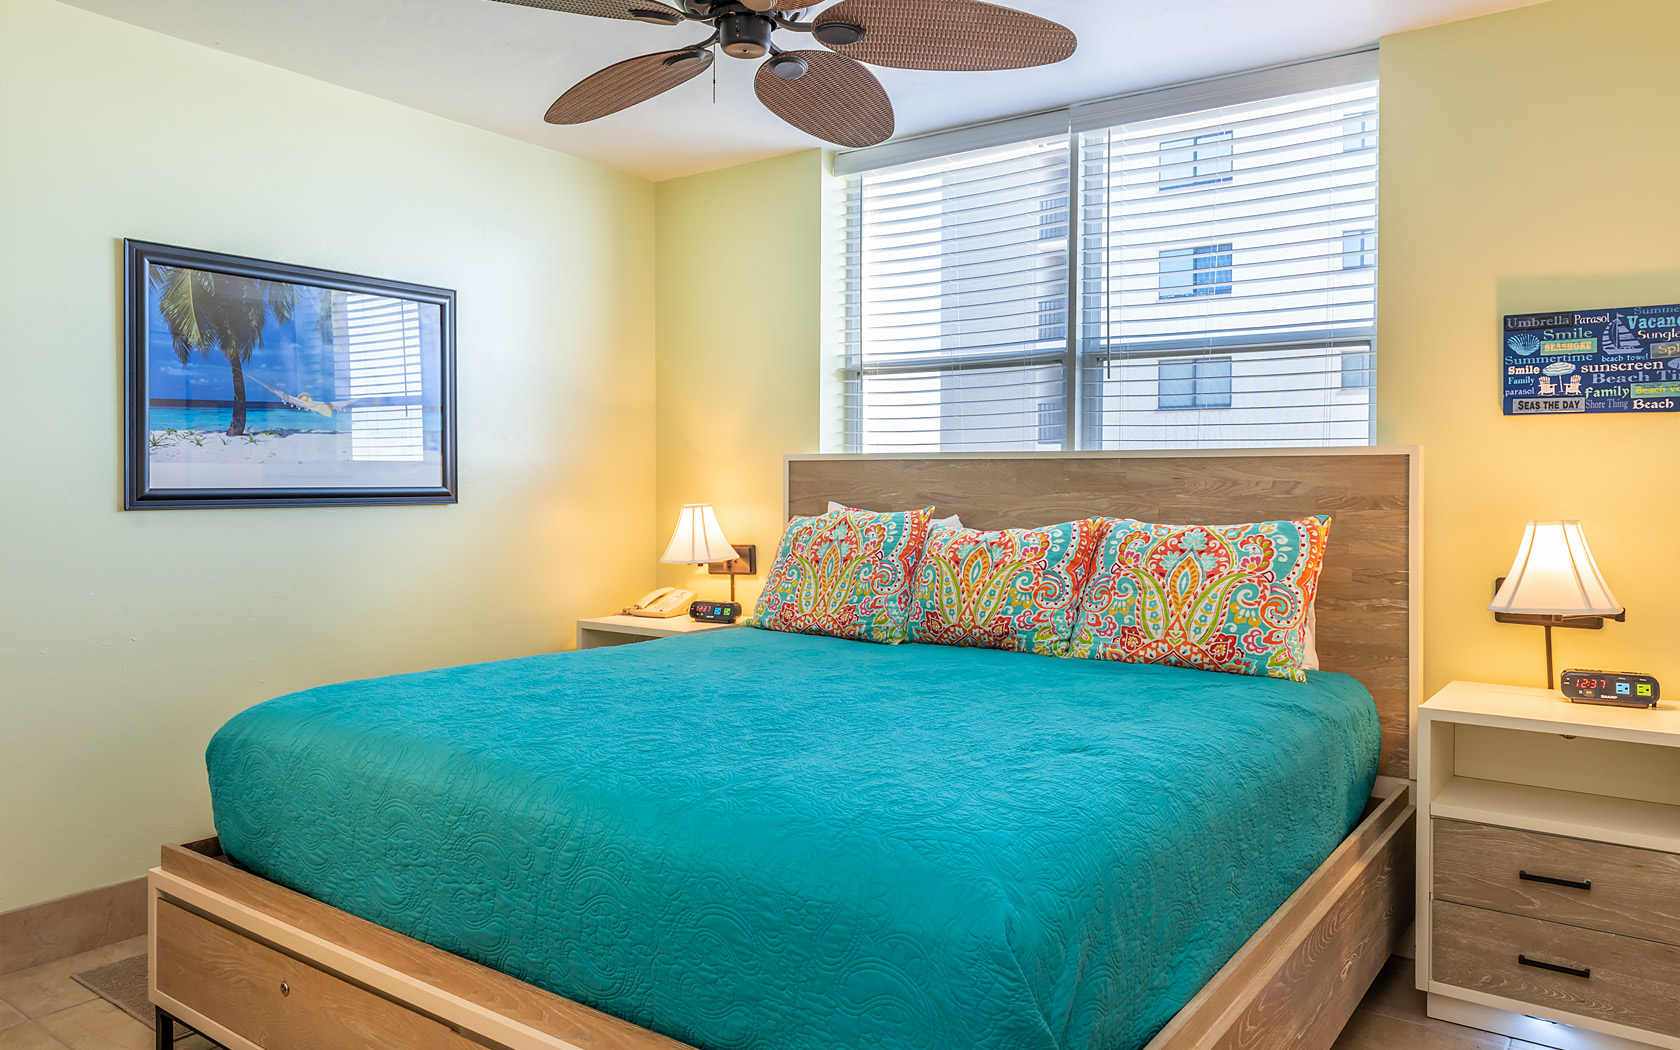 Casa Play Resort Gulfview Suite bedroom with turquoise bed spread